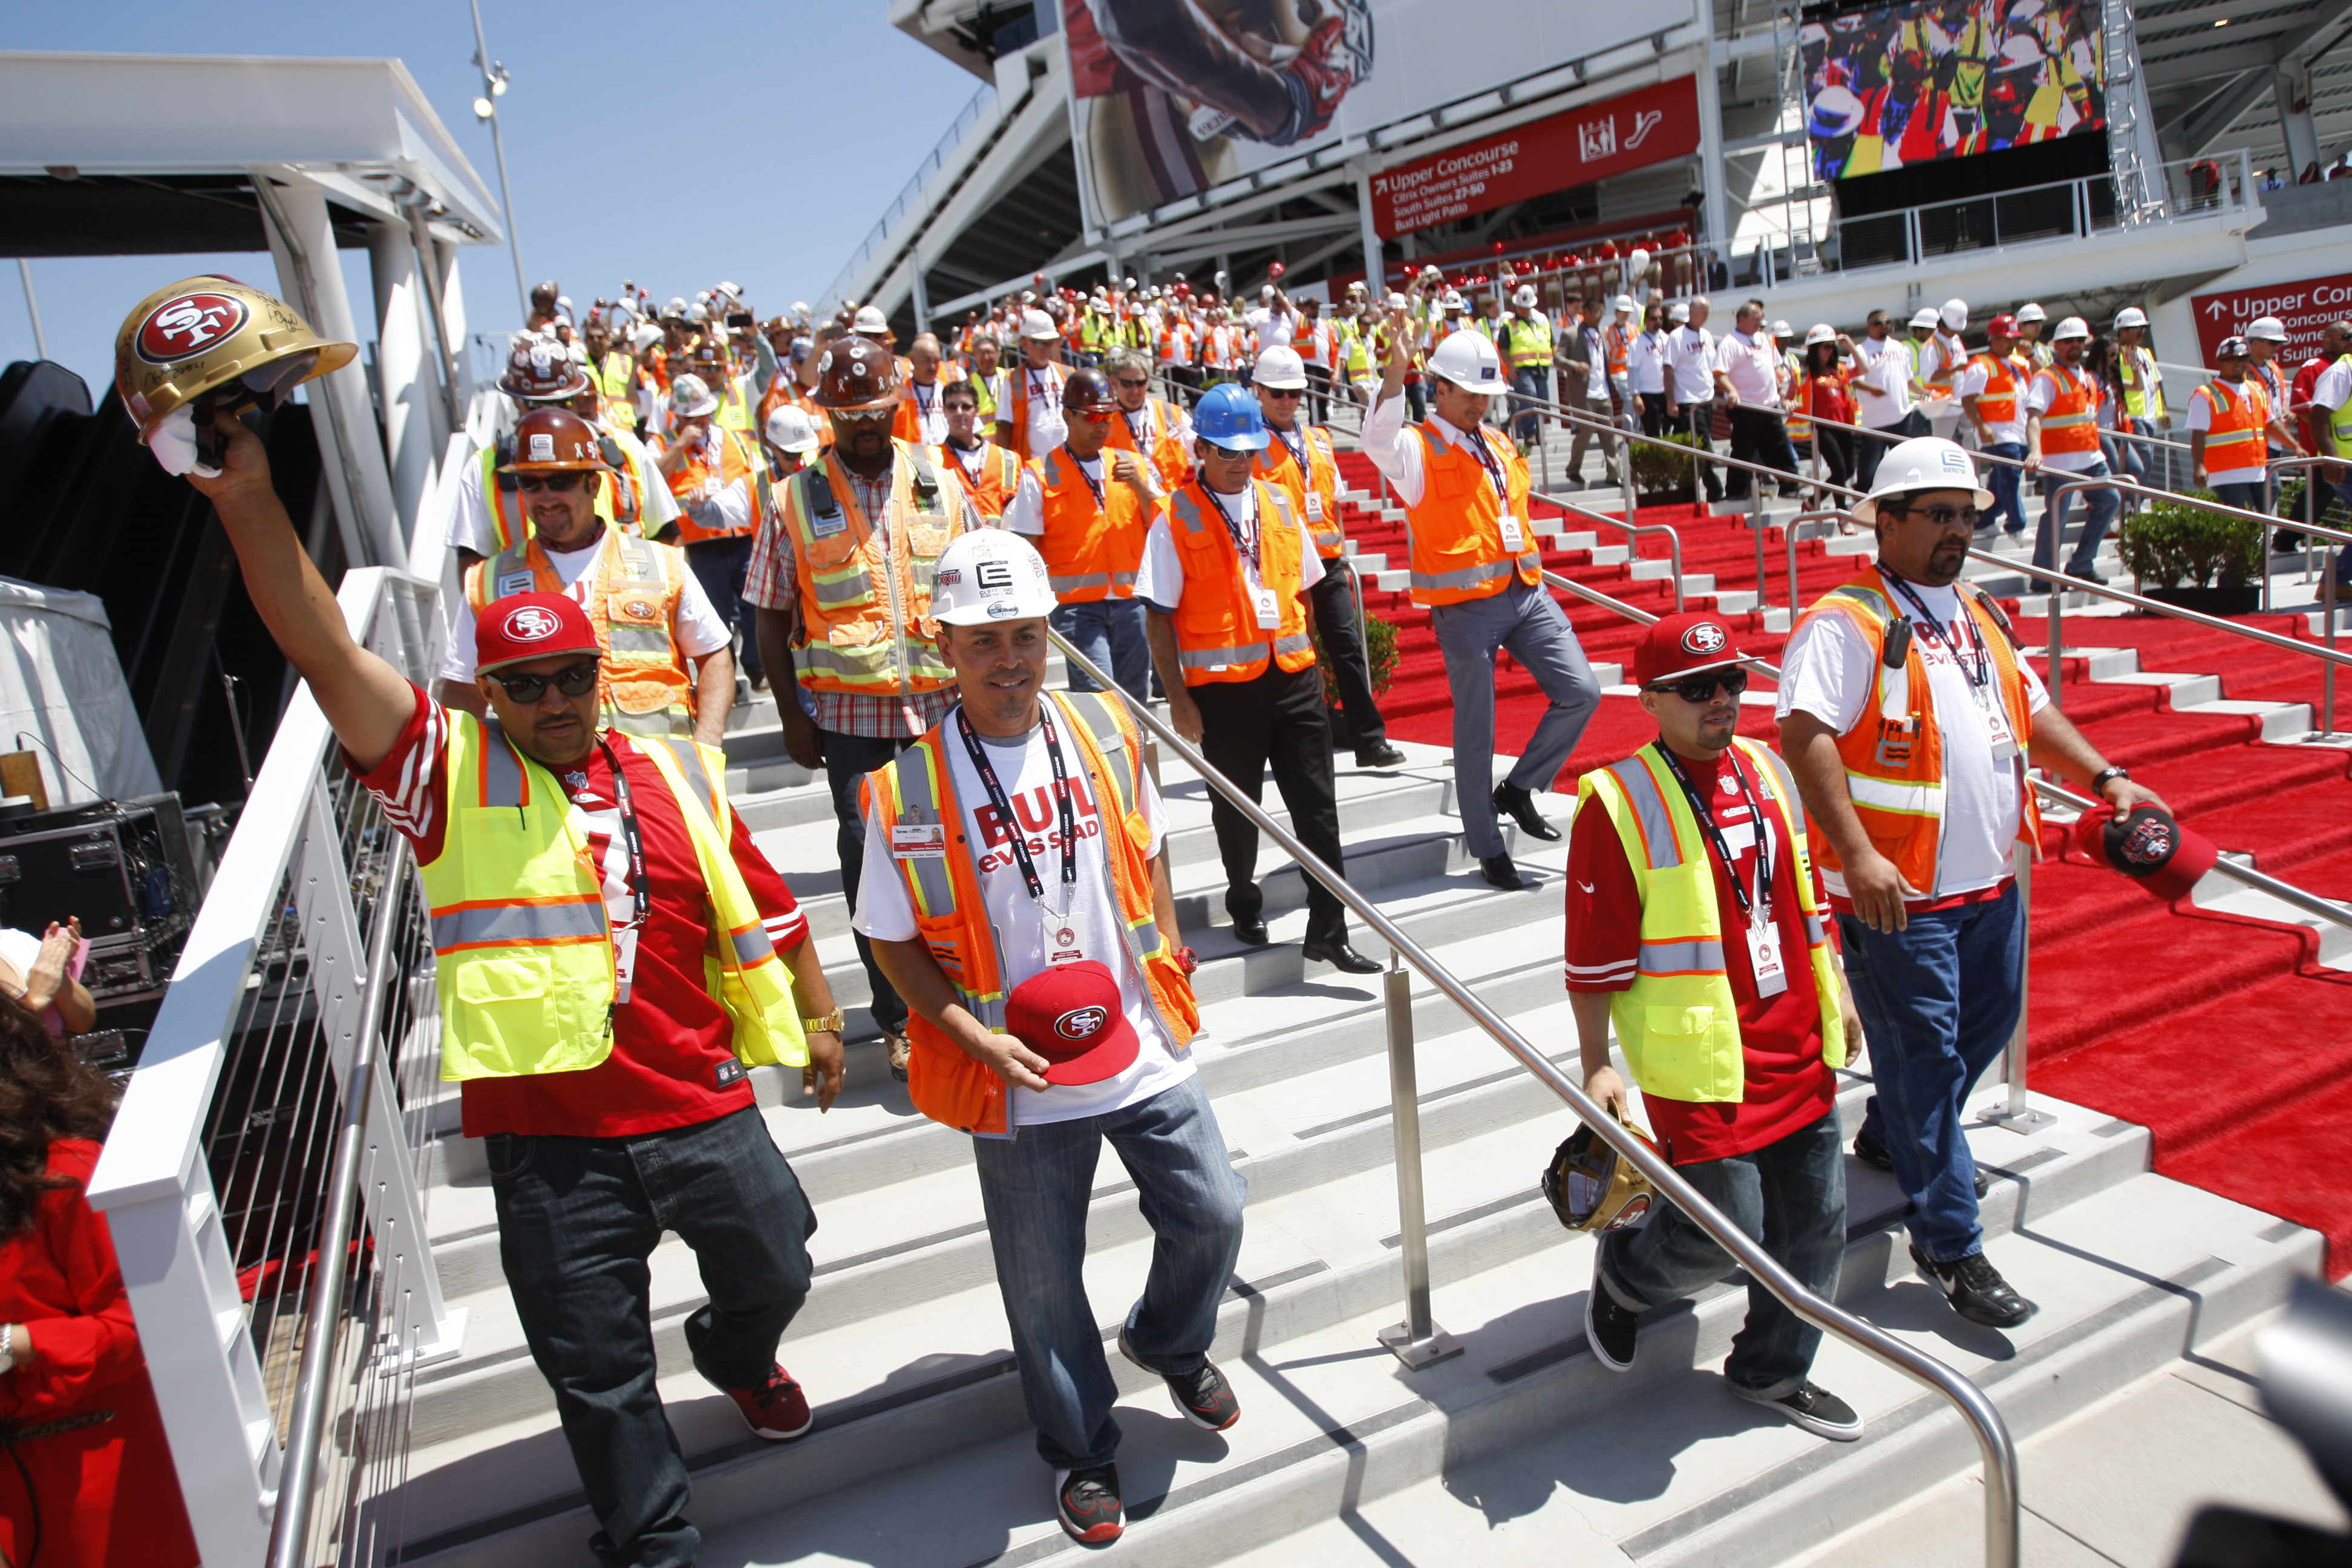 Workers head down the stairs during the Ribbon Cutting Ceremony for Levi Stadium on July 17, 2014 in Santa Clara, California.